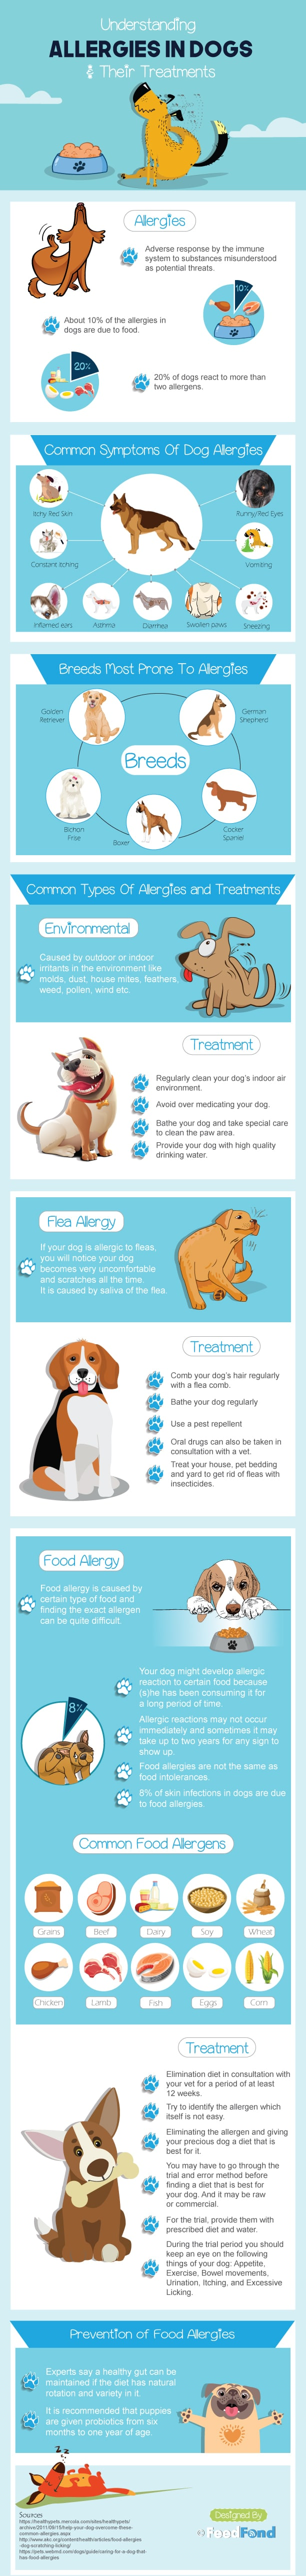 How to Read Your Dogs Allergies and Get the Right Treatment - Infographic